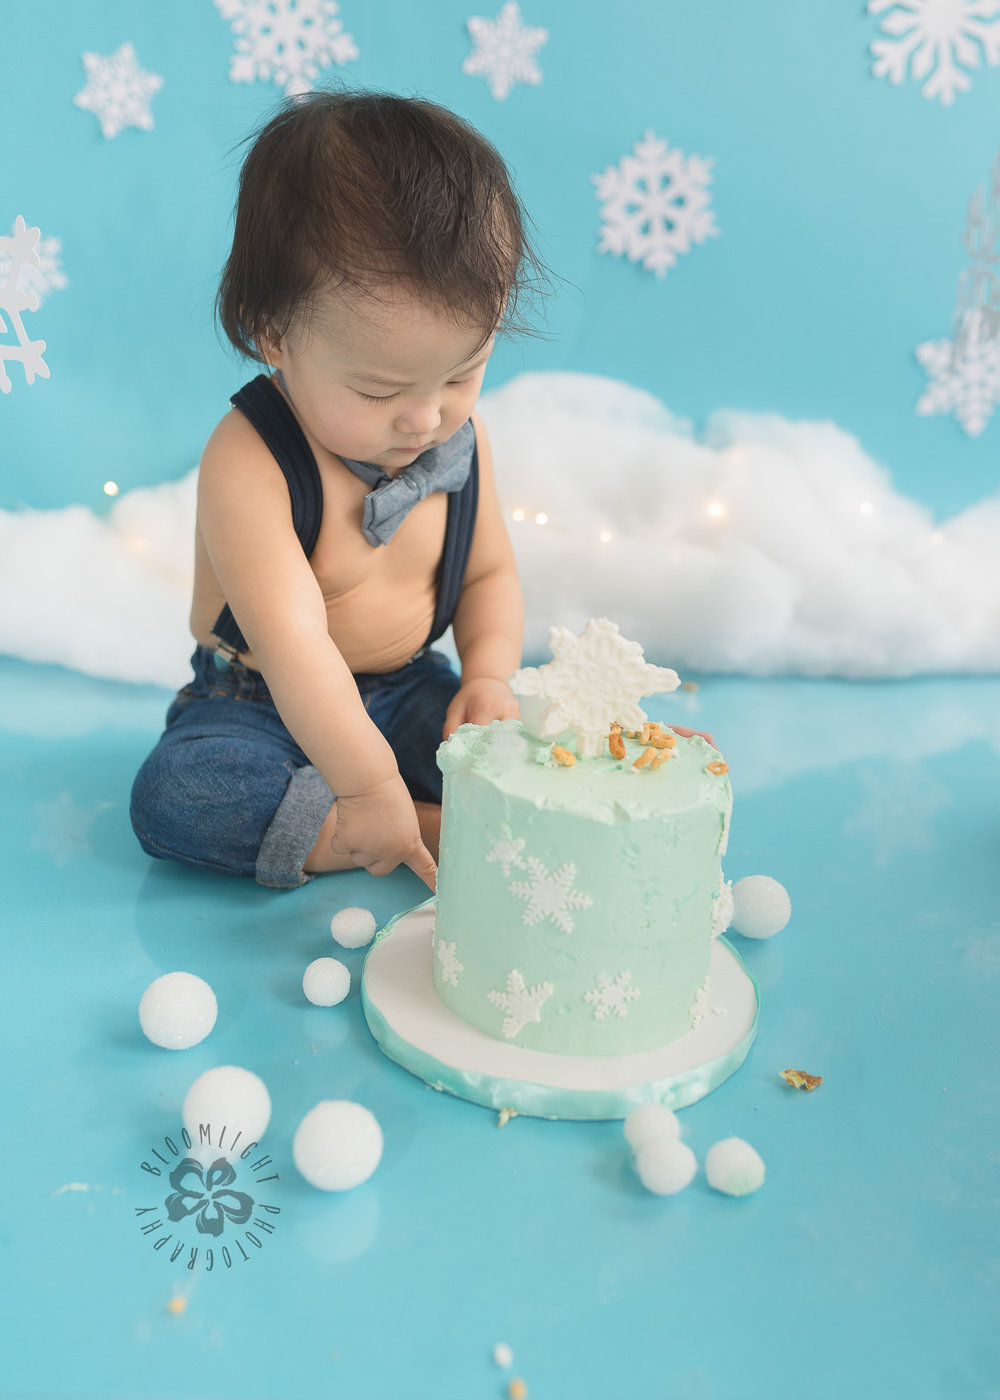 Toronto-North-York-baby-birthday-cake-smash-winter-snowflake-theme-photography (7).jpg